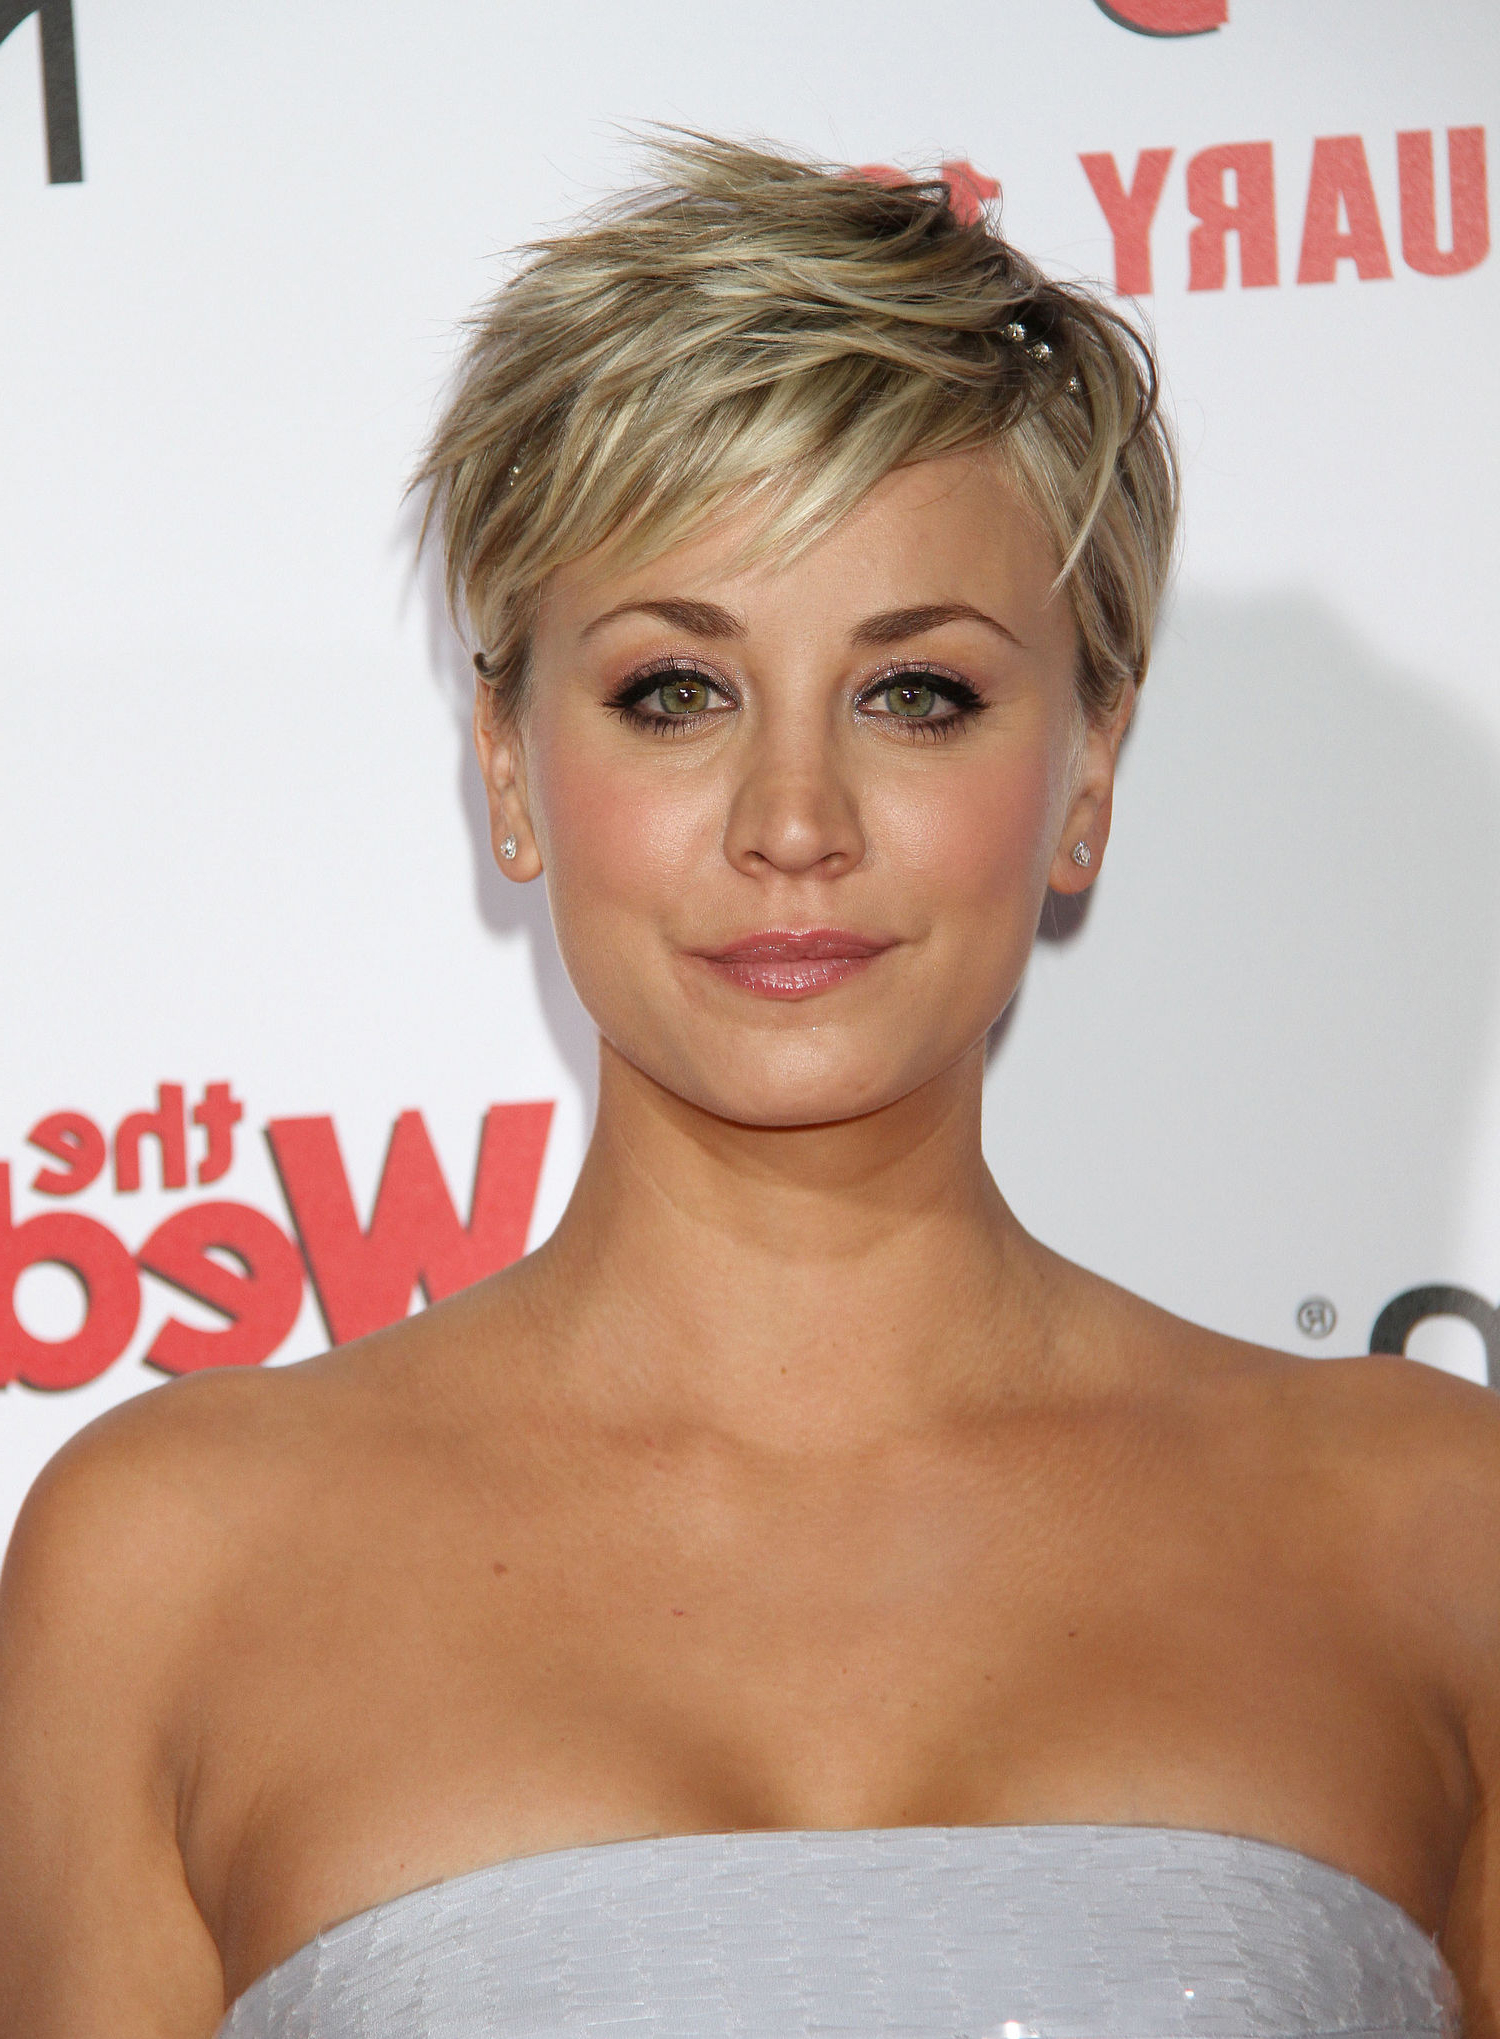 Kaley Cuoco Sweeting Headband Hair 1 Main – Toppik Blog Intended For Kaley Cuoco Short Hairstyles (View 23 of 25)